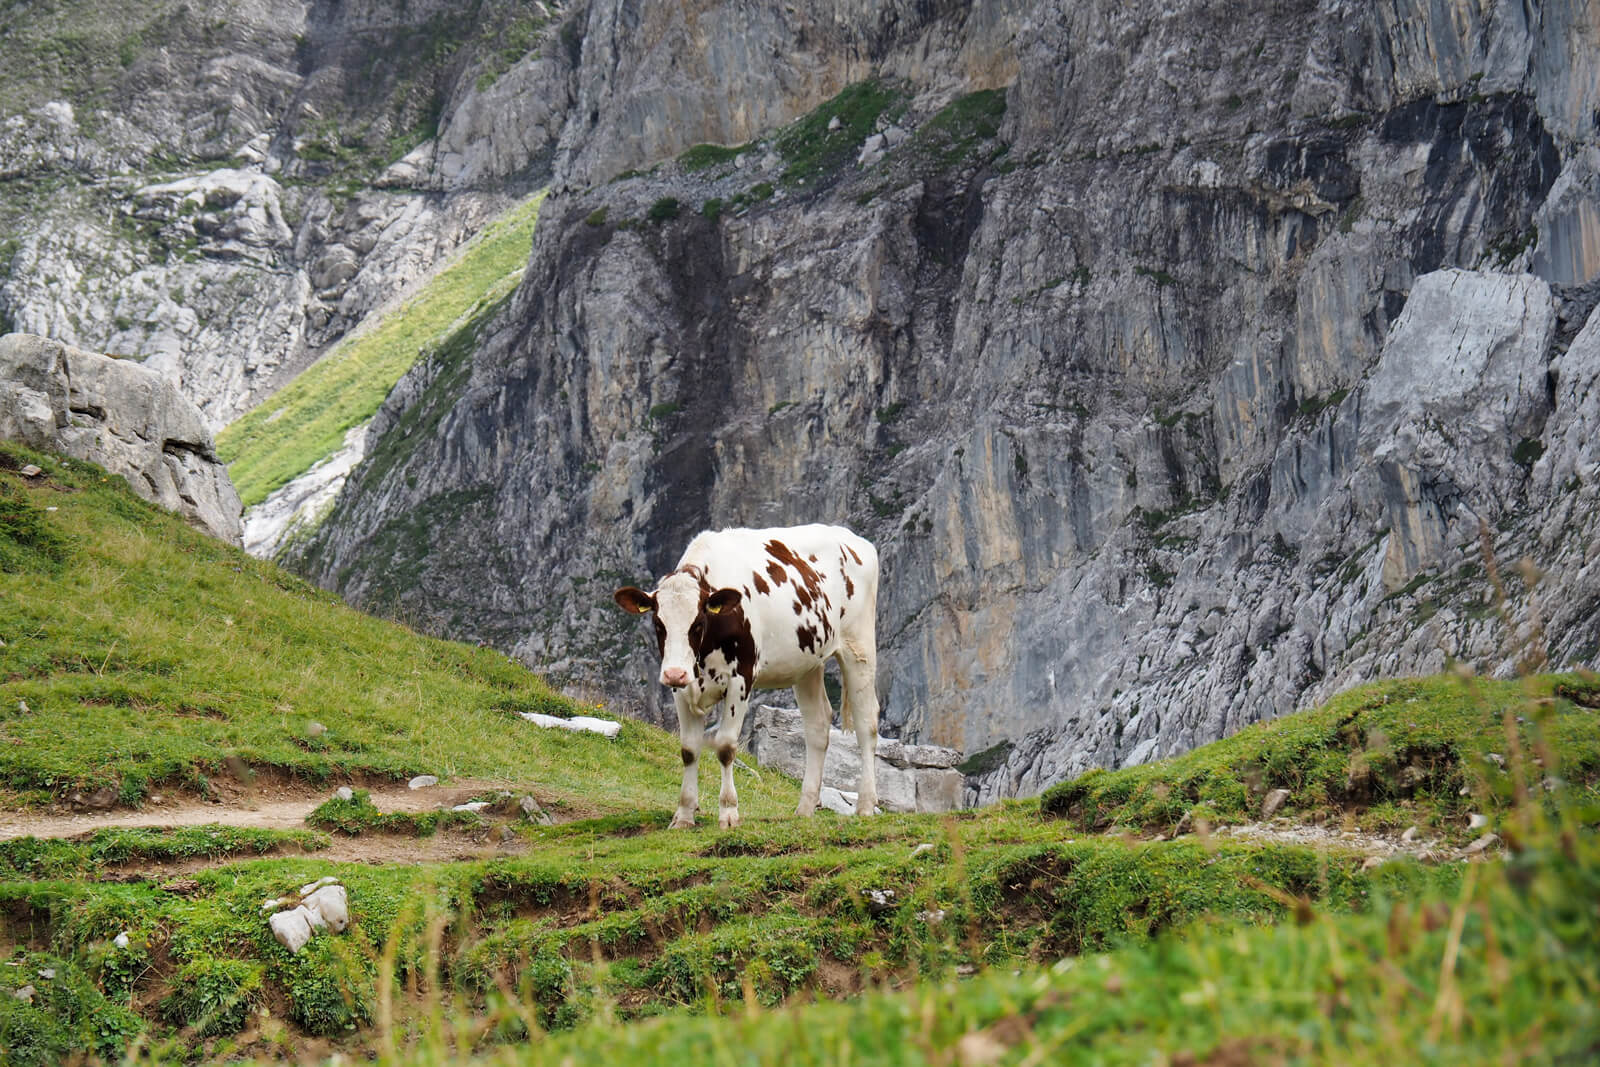 A Cow along the Panoramic Hike to Iffigenalp in Lenk-Simmental